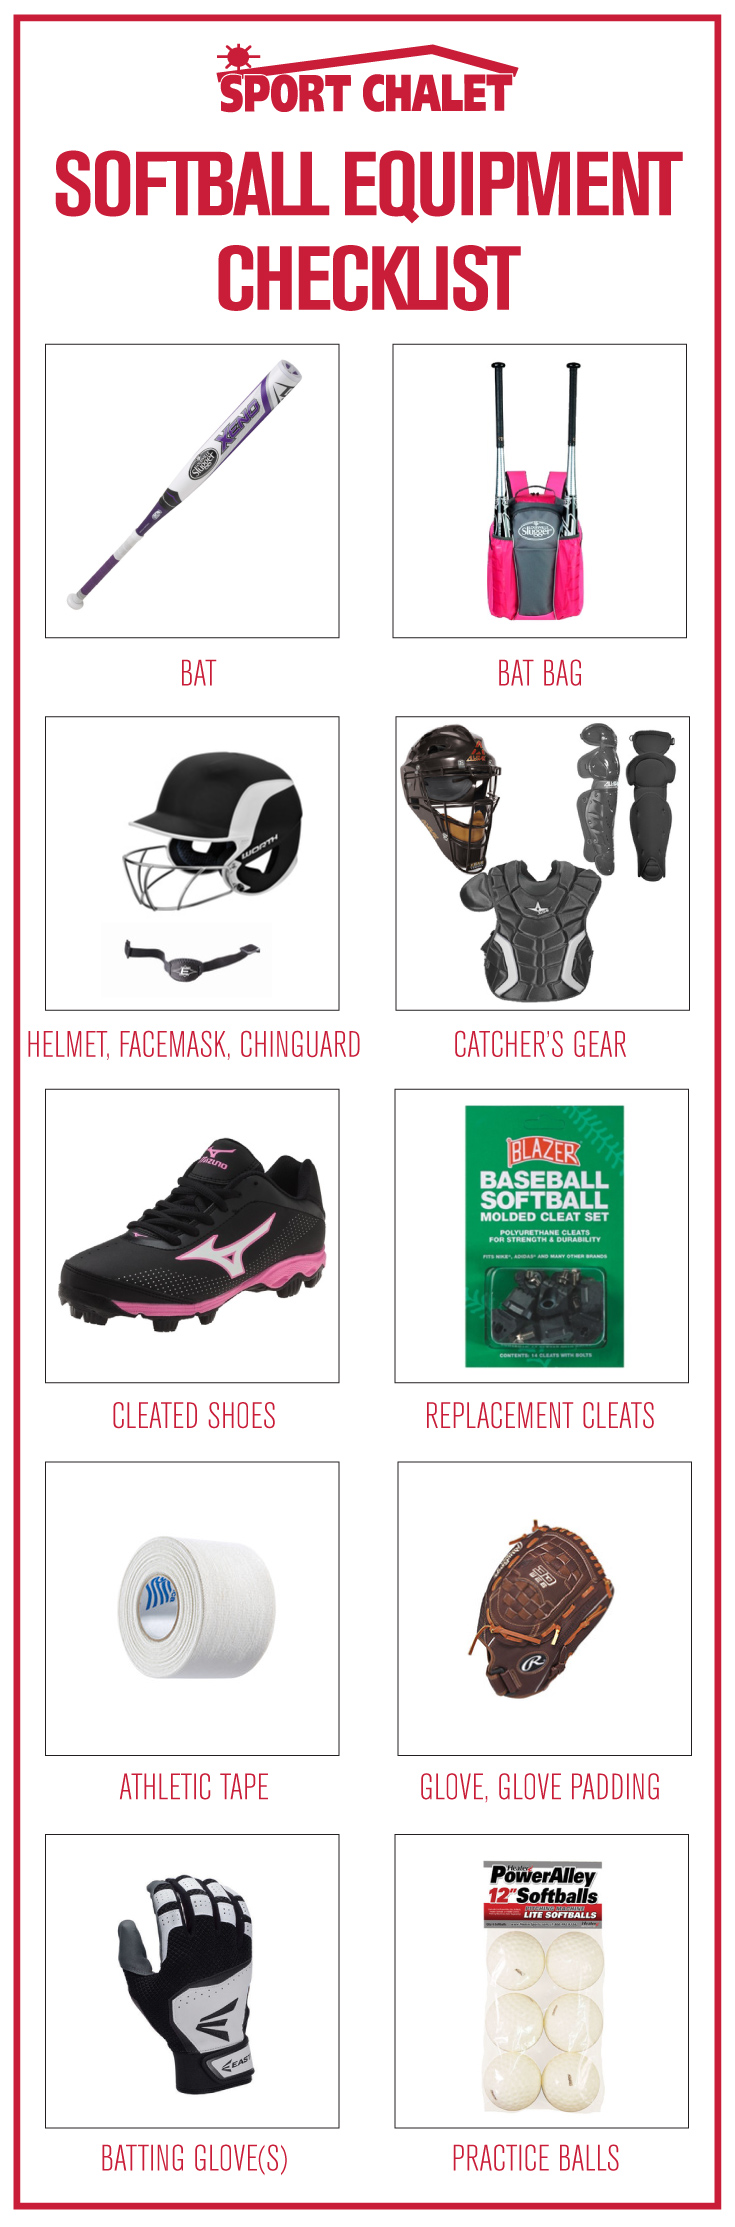 Prepare For Thei Season Using This Softball Equipment Checklist